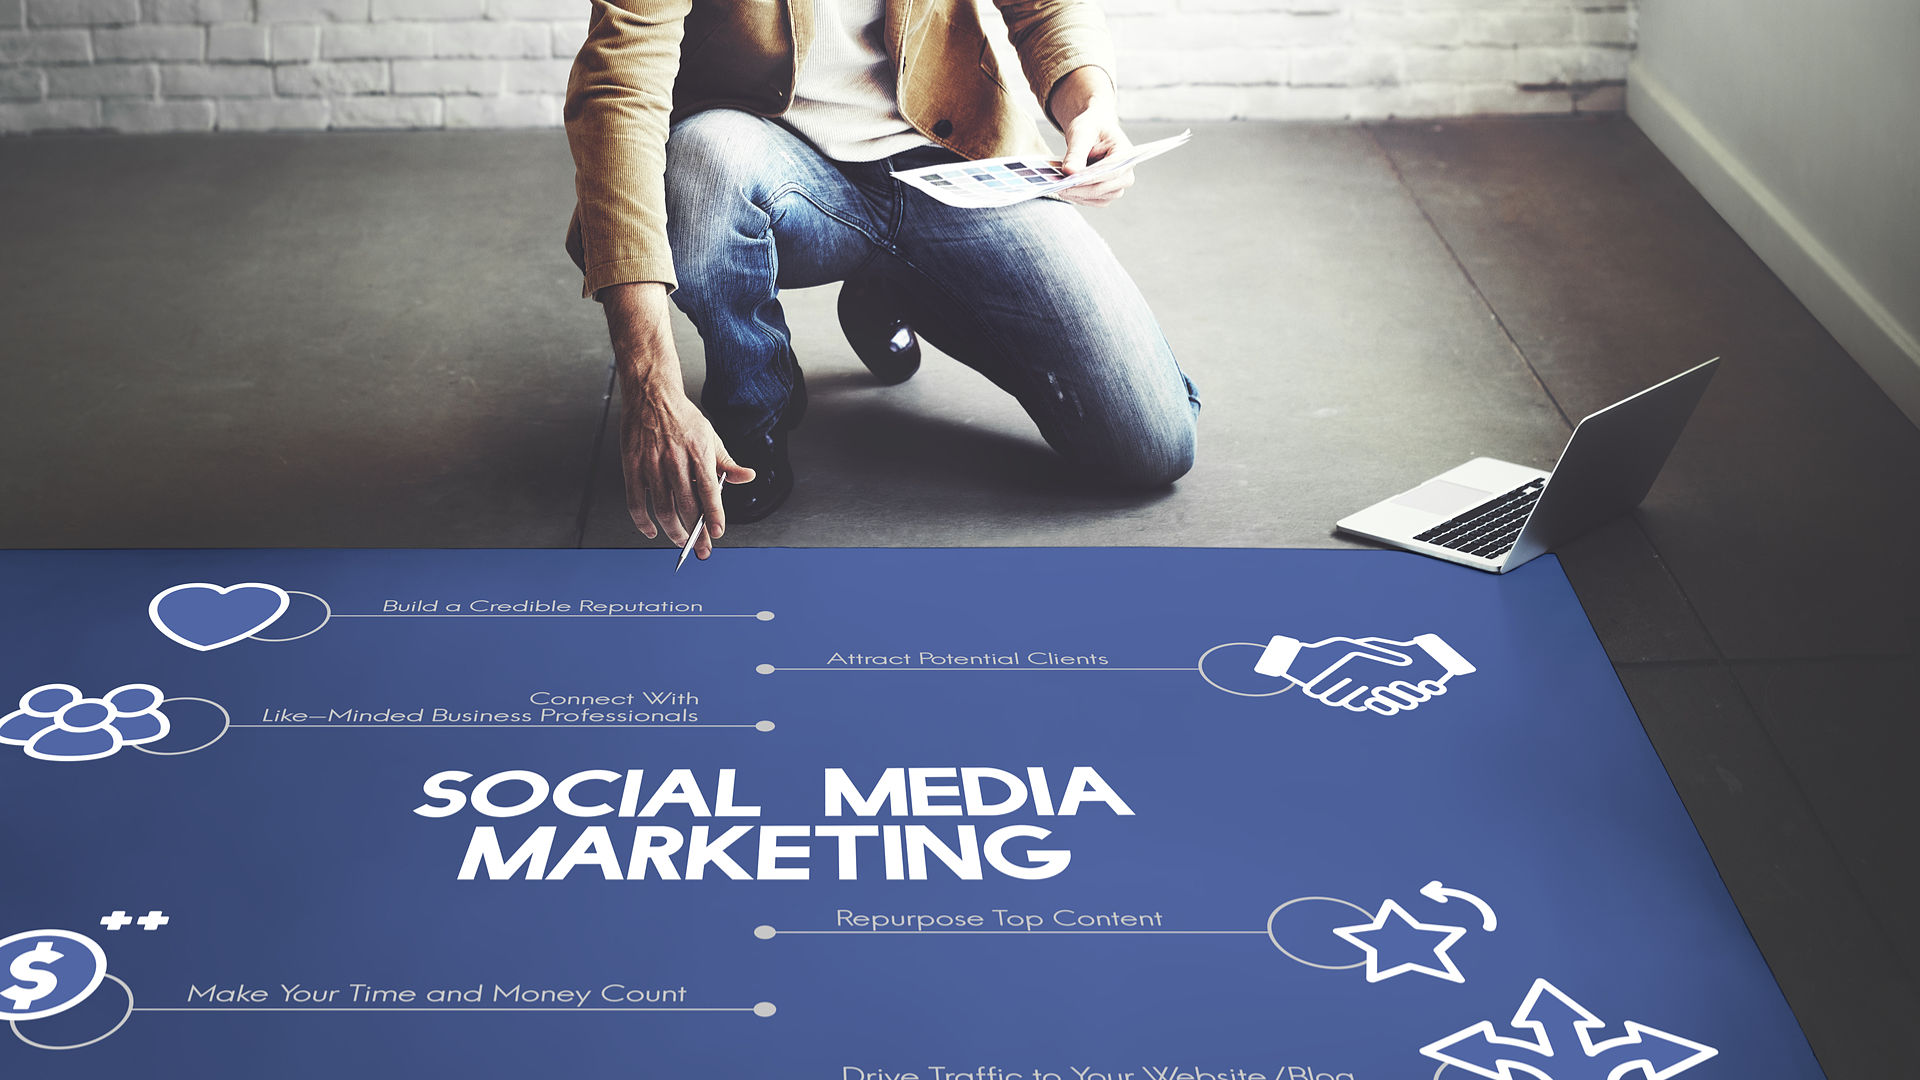 GrammarPros Social Media Marketing